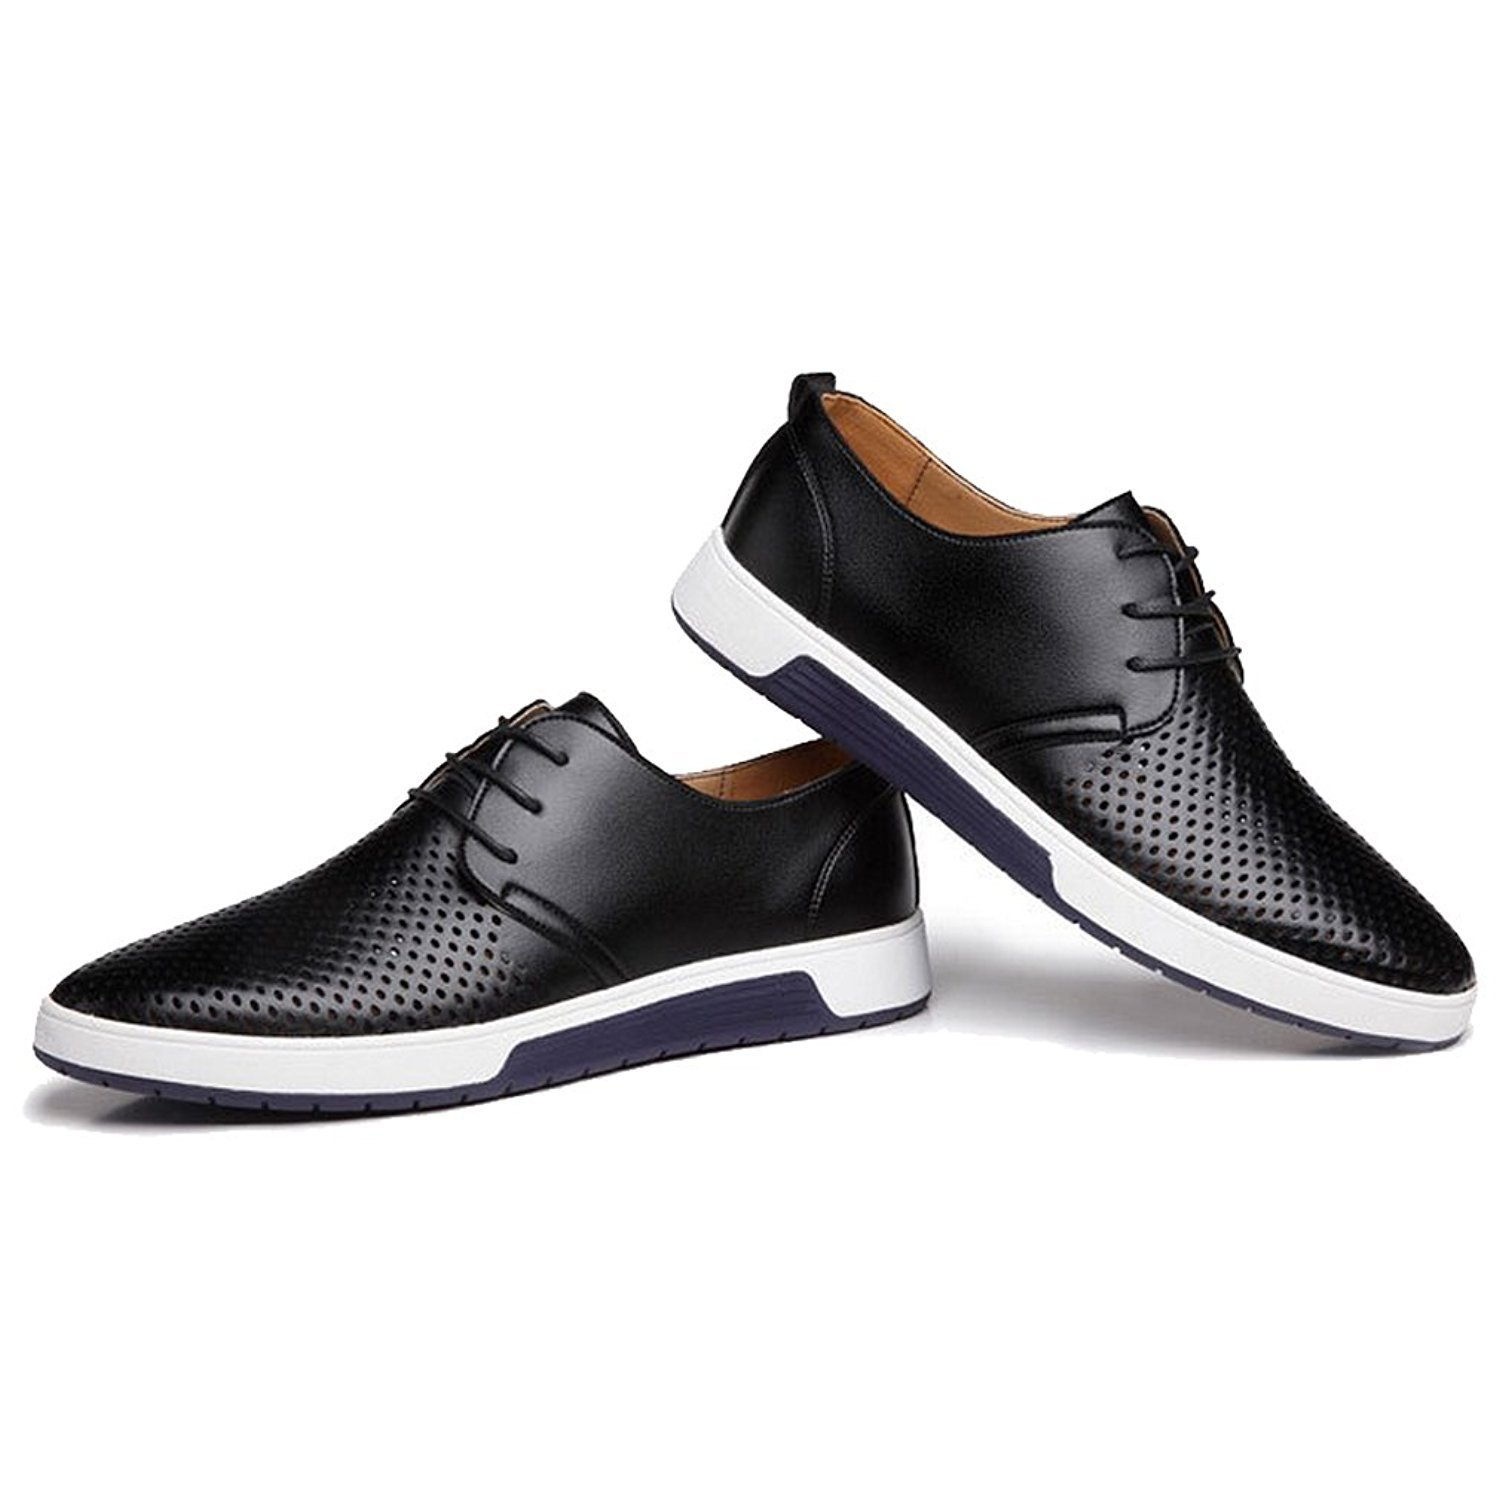 Casual Oxford Shoes Breathable Flat